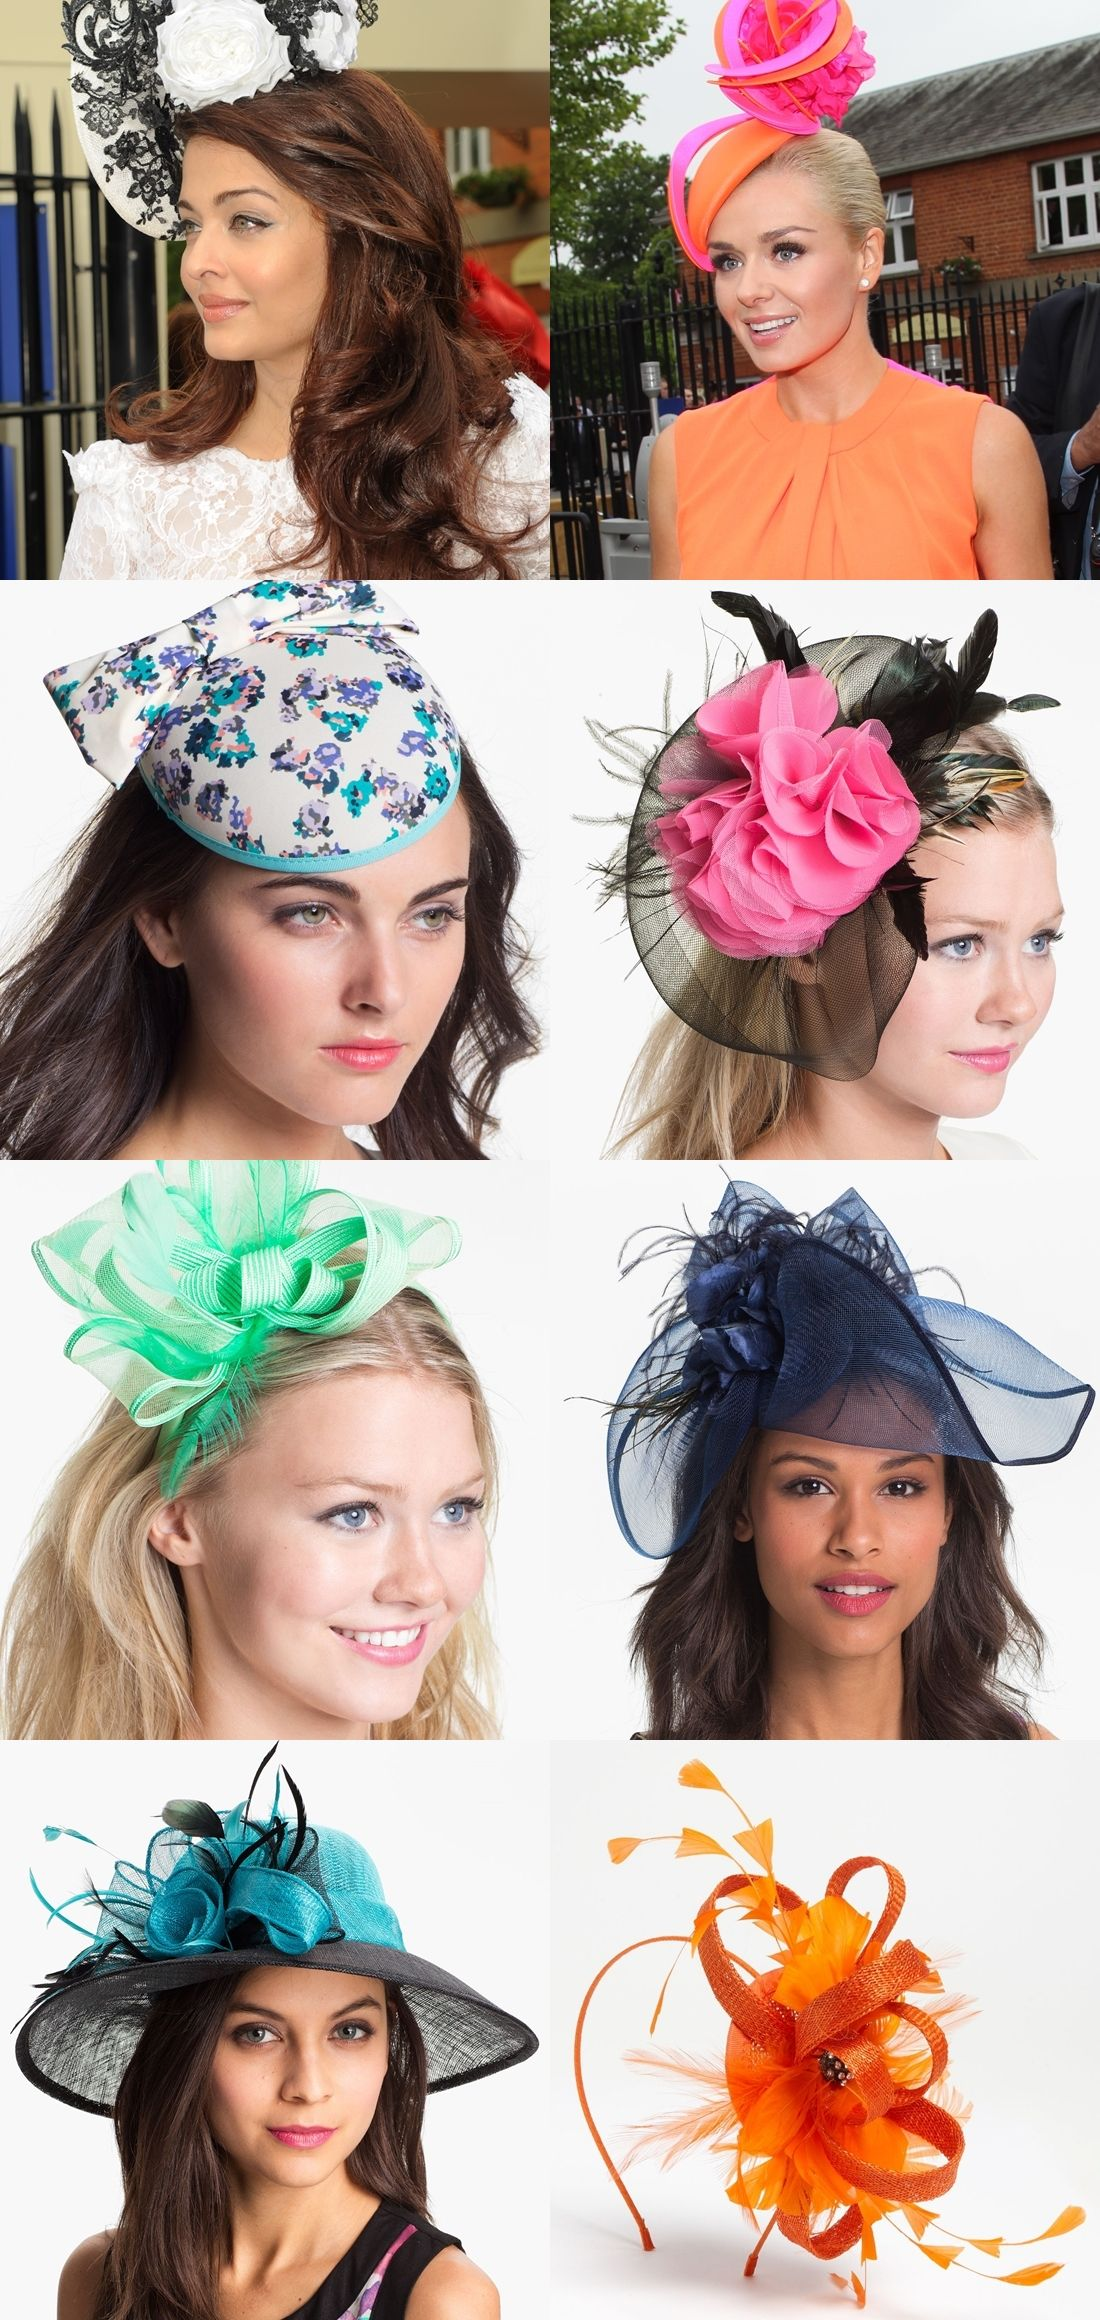 c24327d1546 8 Cute Fascinators and Hats for an Ascot-Themed Party